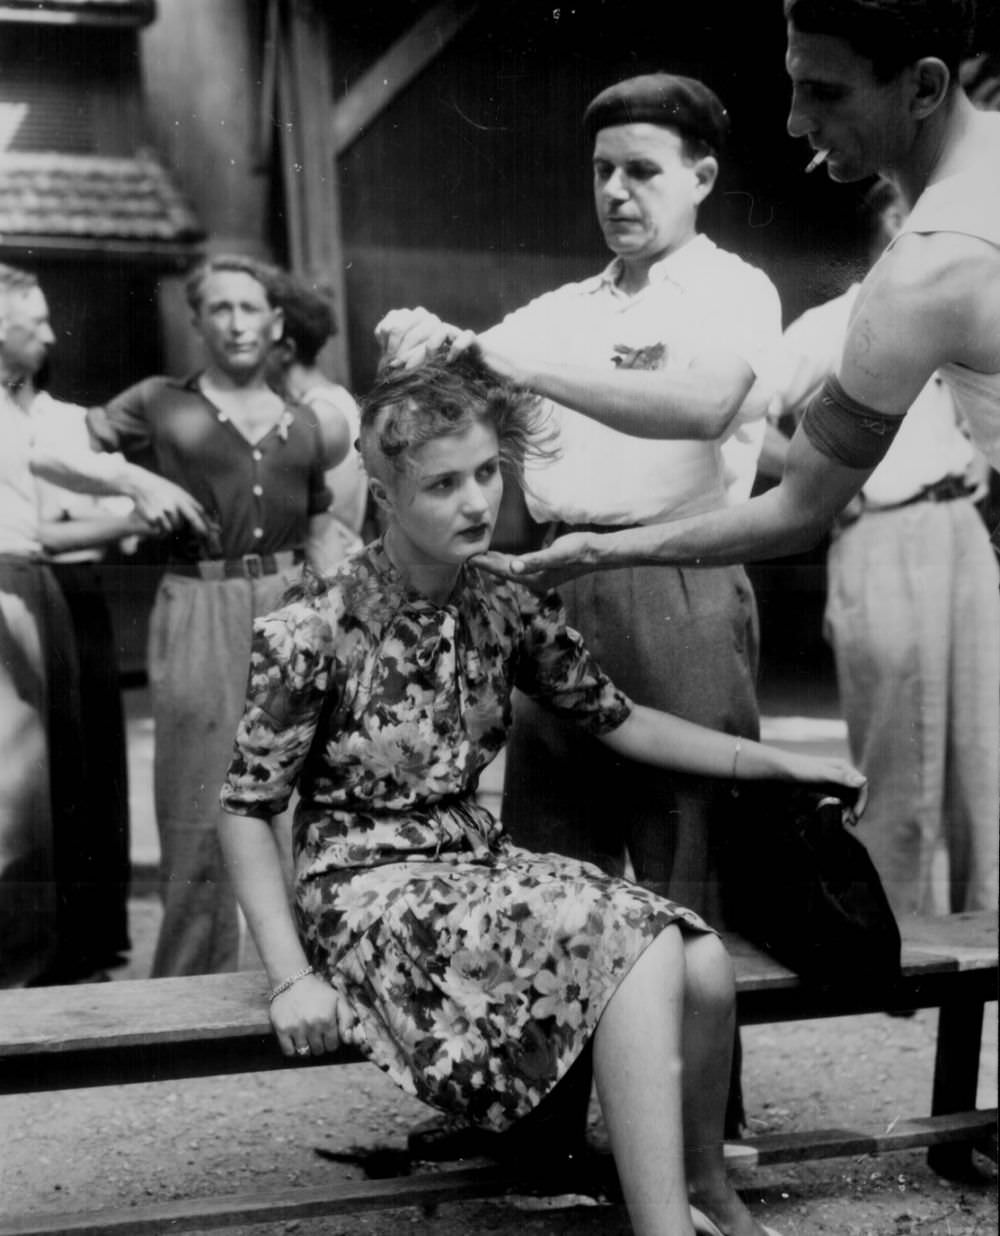 French female collaborator punished by having her head shaved to publicly mark her, 1944.